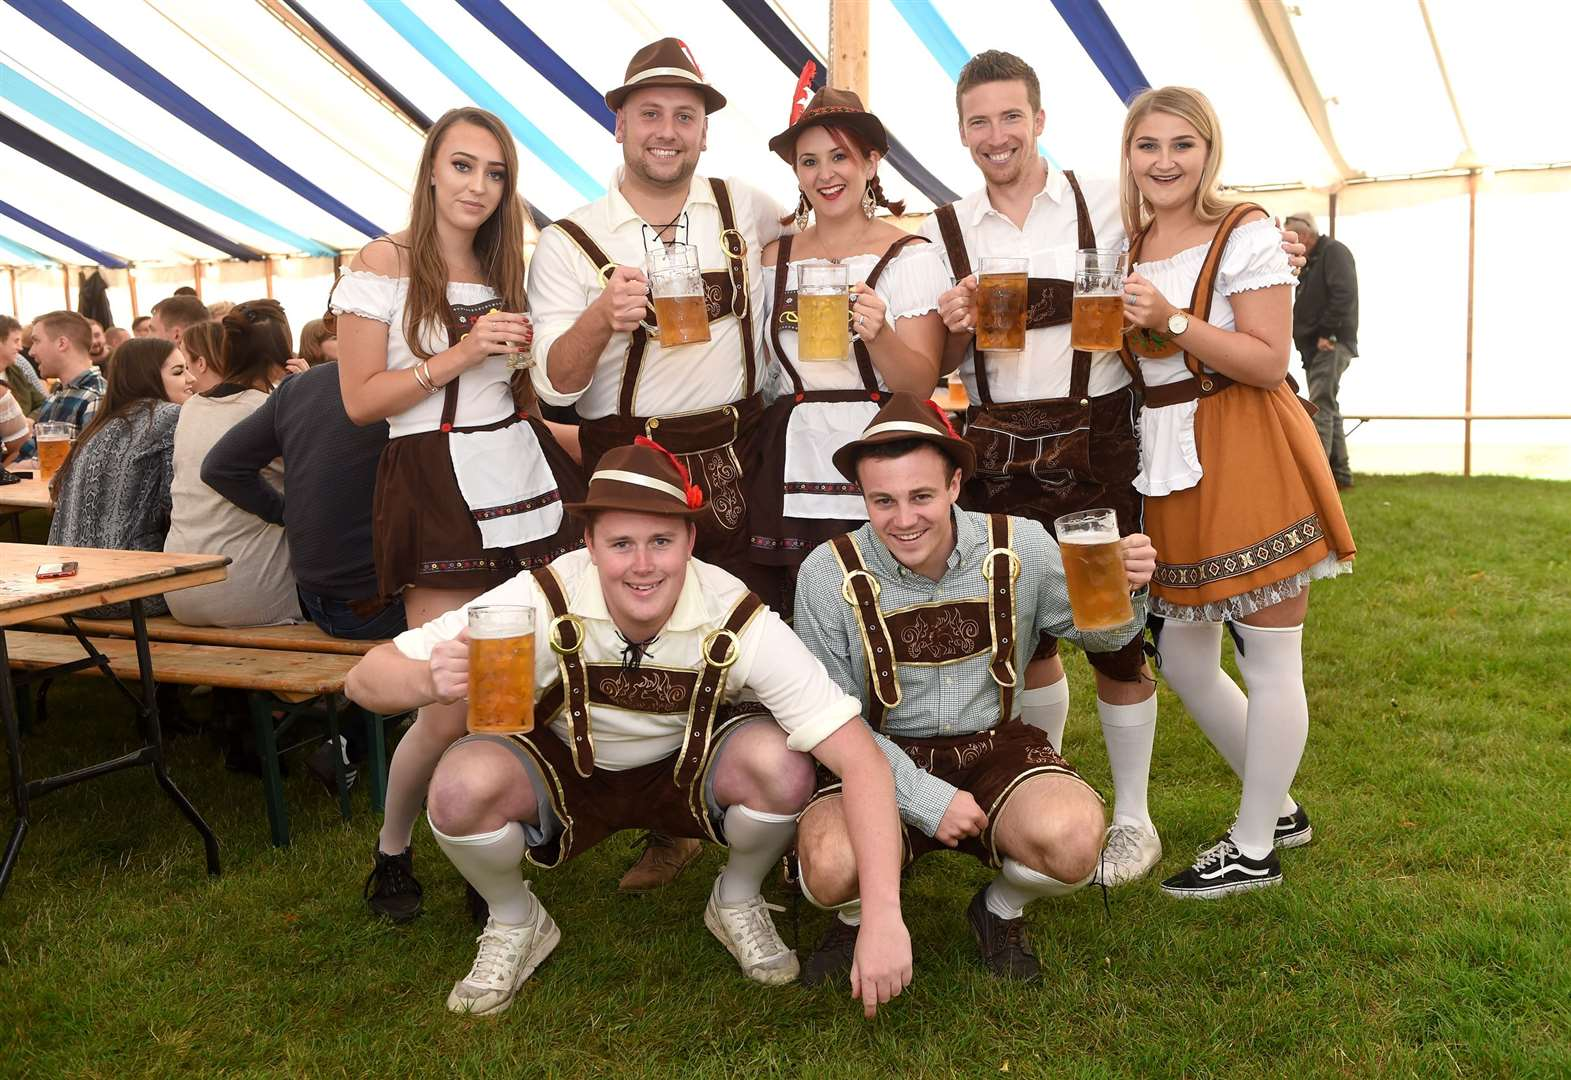 Oktoberfest enjoyed by 1,000 in Bury